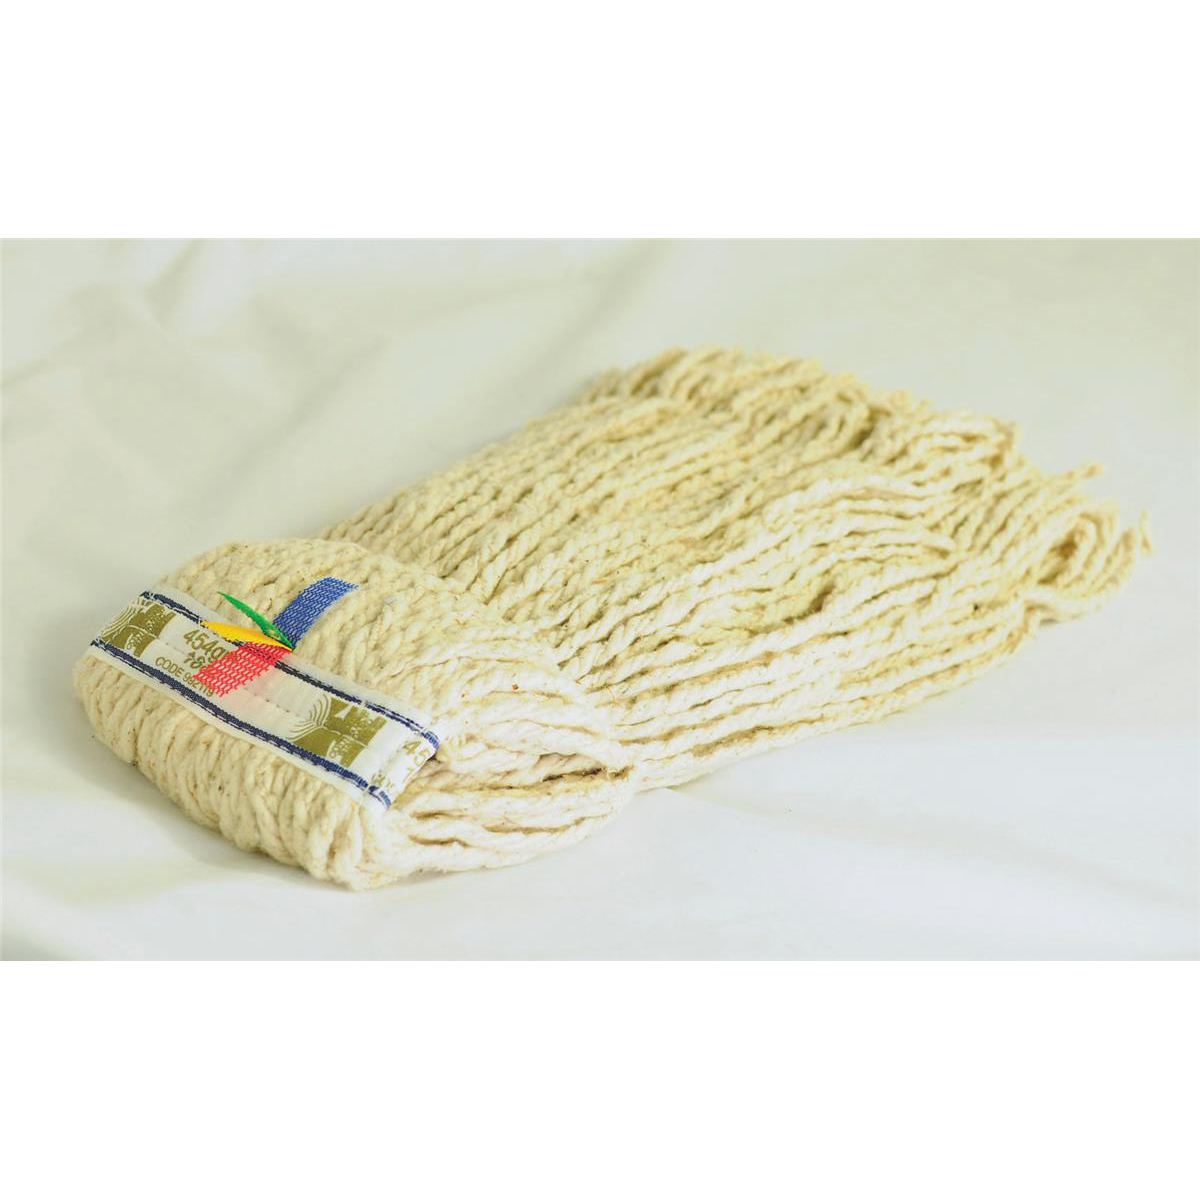 Brushes & Brooms Kentucky Mop Head Multifold Hyienic with Assorted Removeable Tabs 16oz/450g